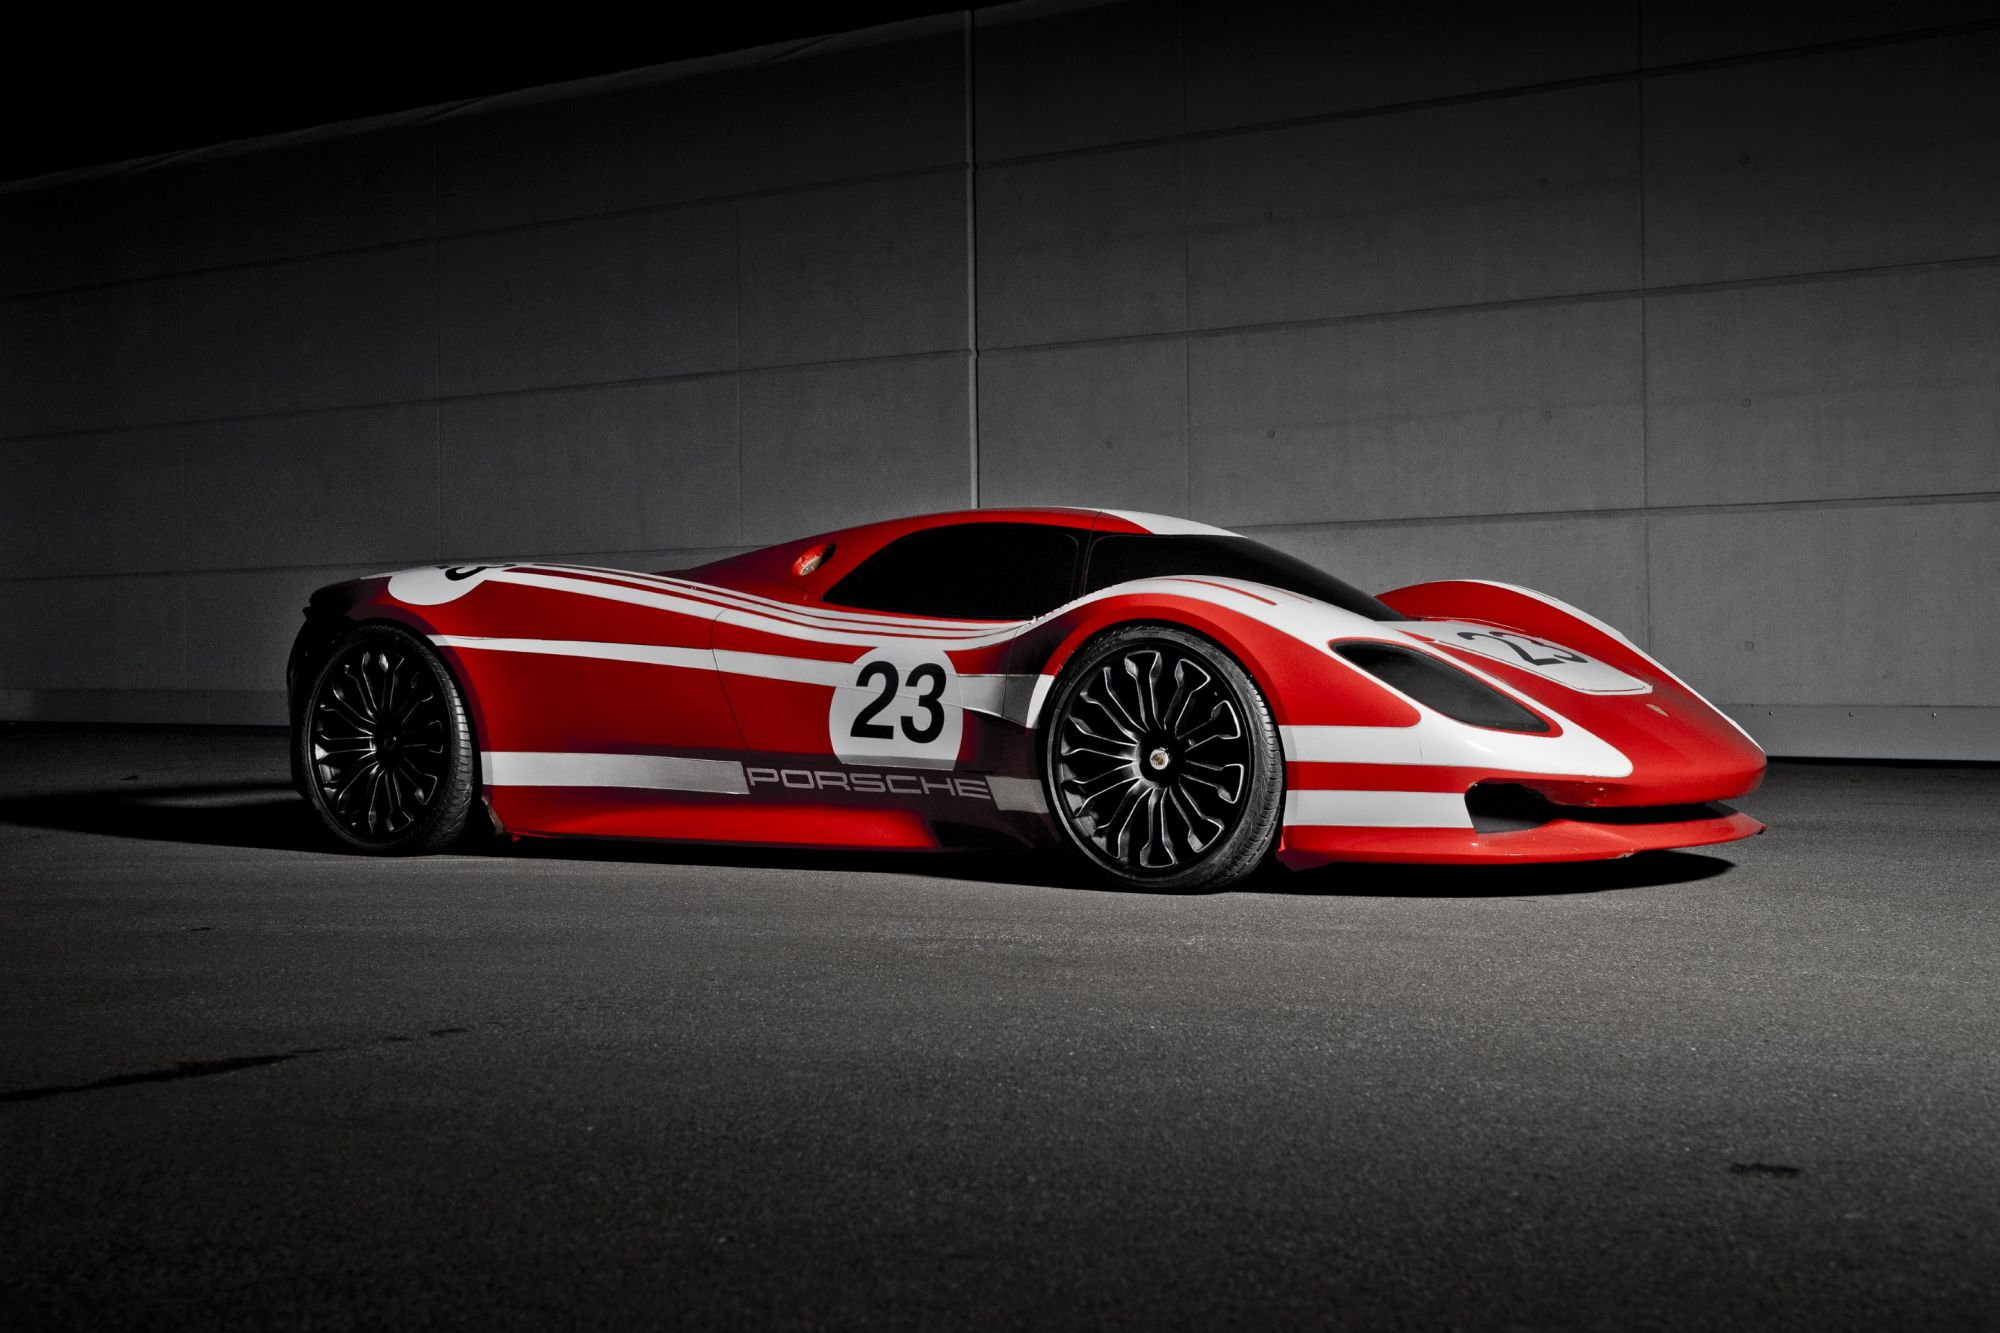 The Porsche 917 concept study will go on show at the Porsche Museum in Stuttgart, Germany